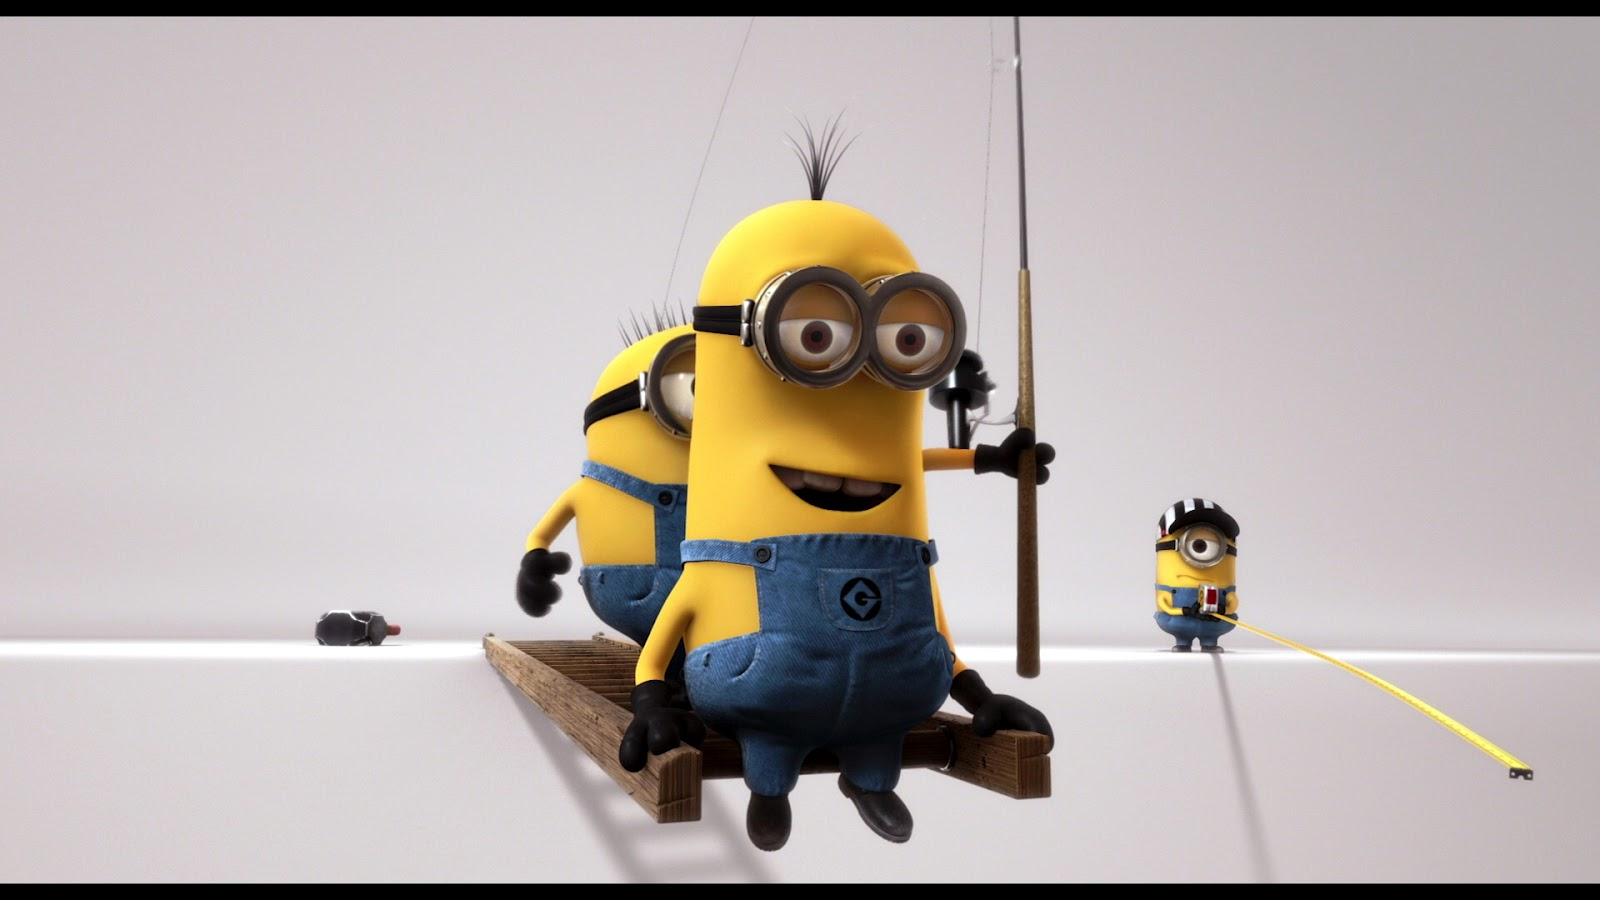 Agnes despicable me hd wallpapers free download - Despicable minions wallpaper ...